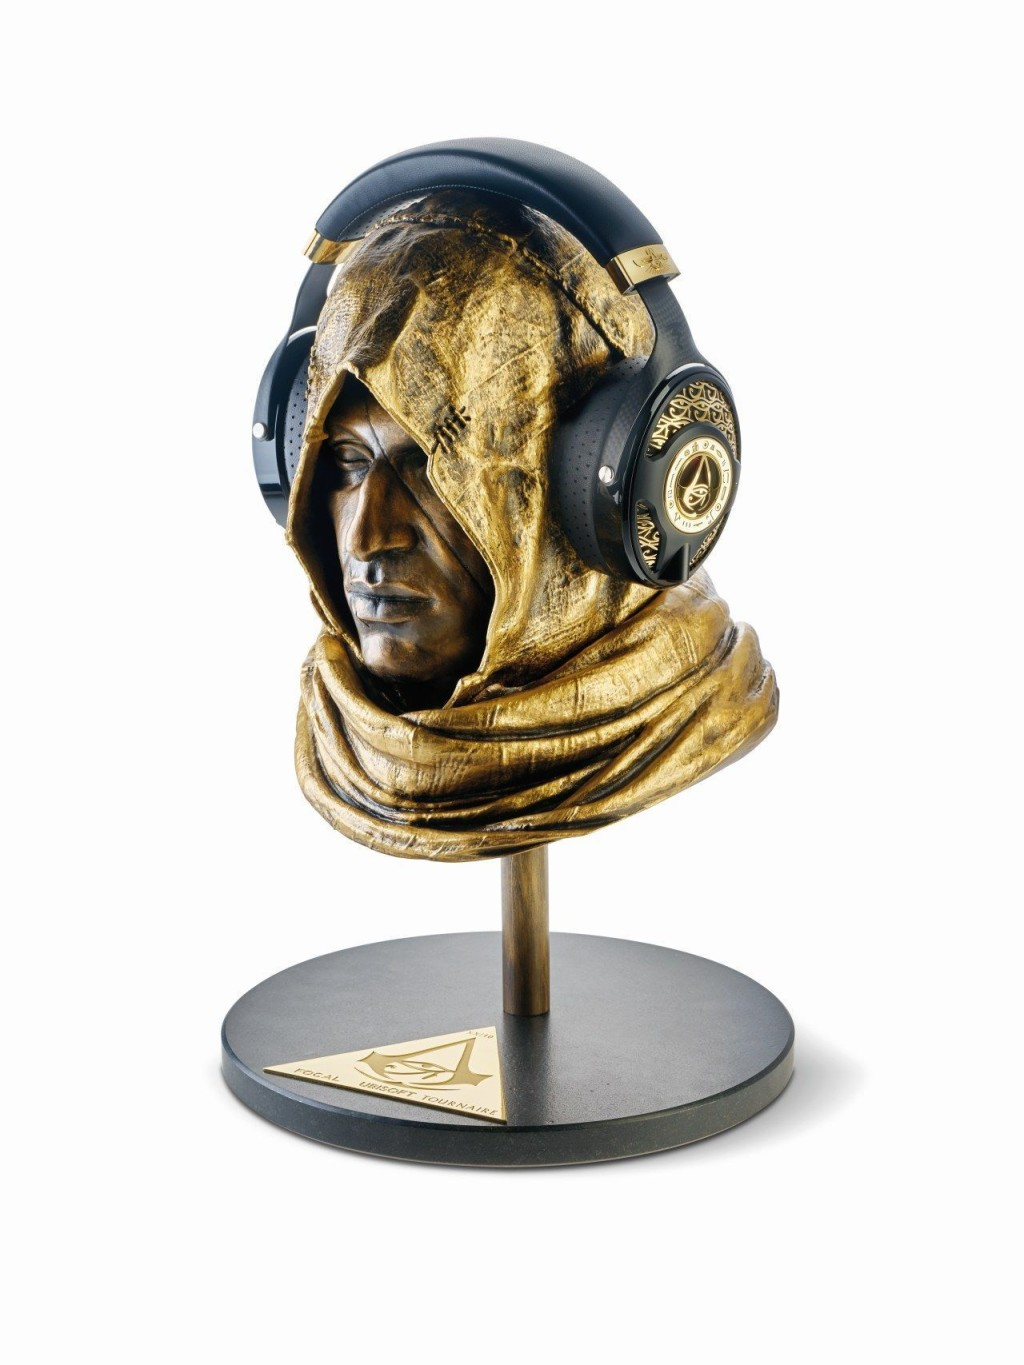 Assassin's Creed Origins Limited edition Utopia